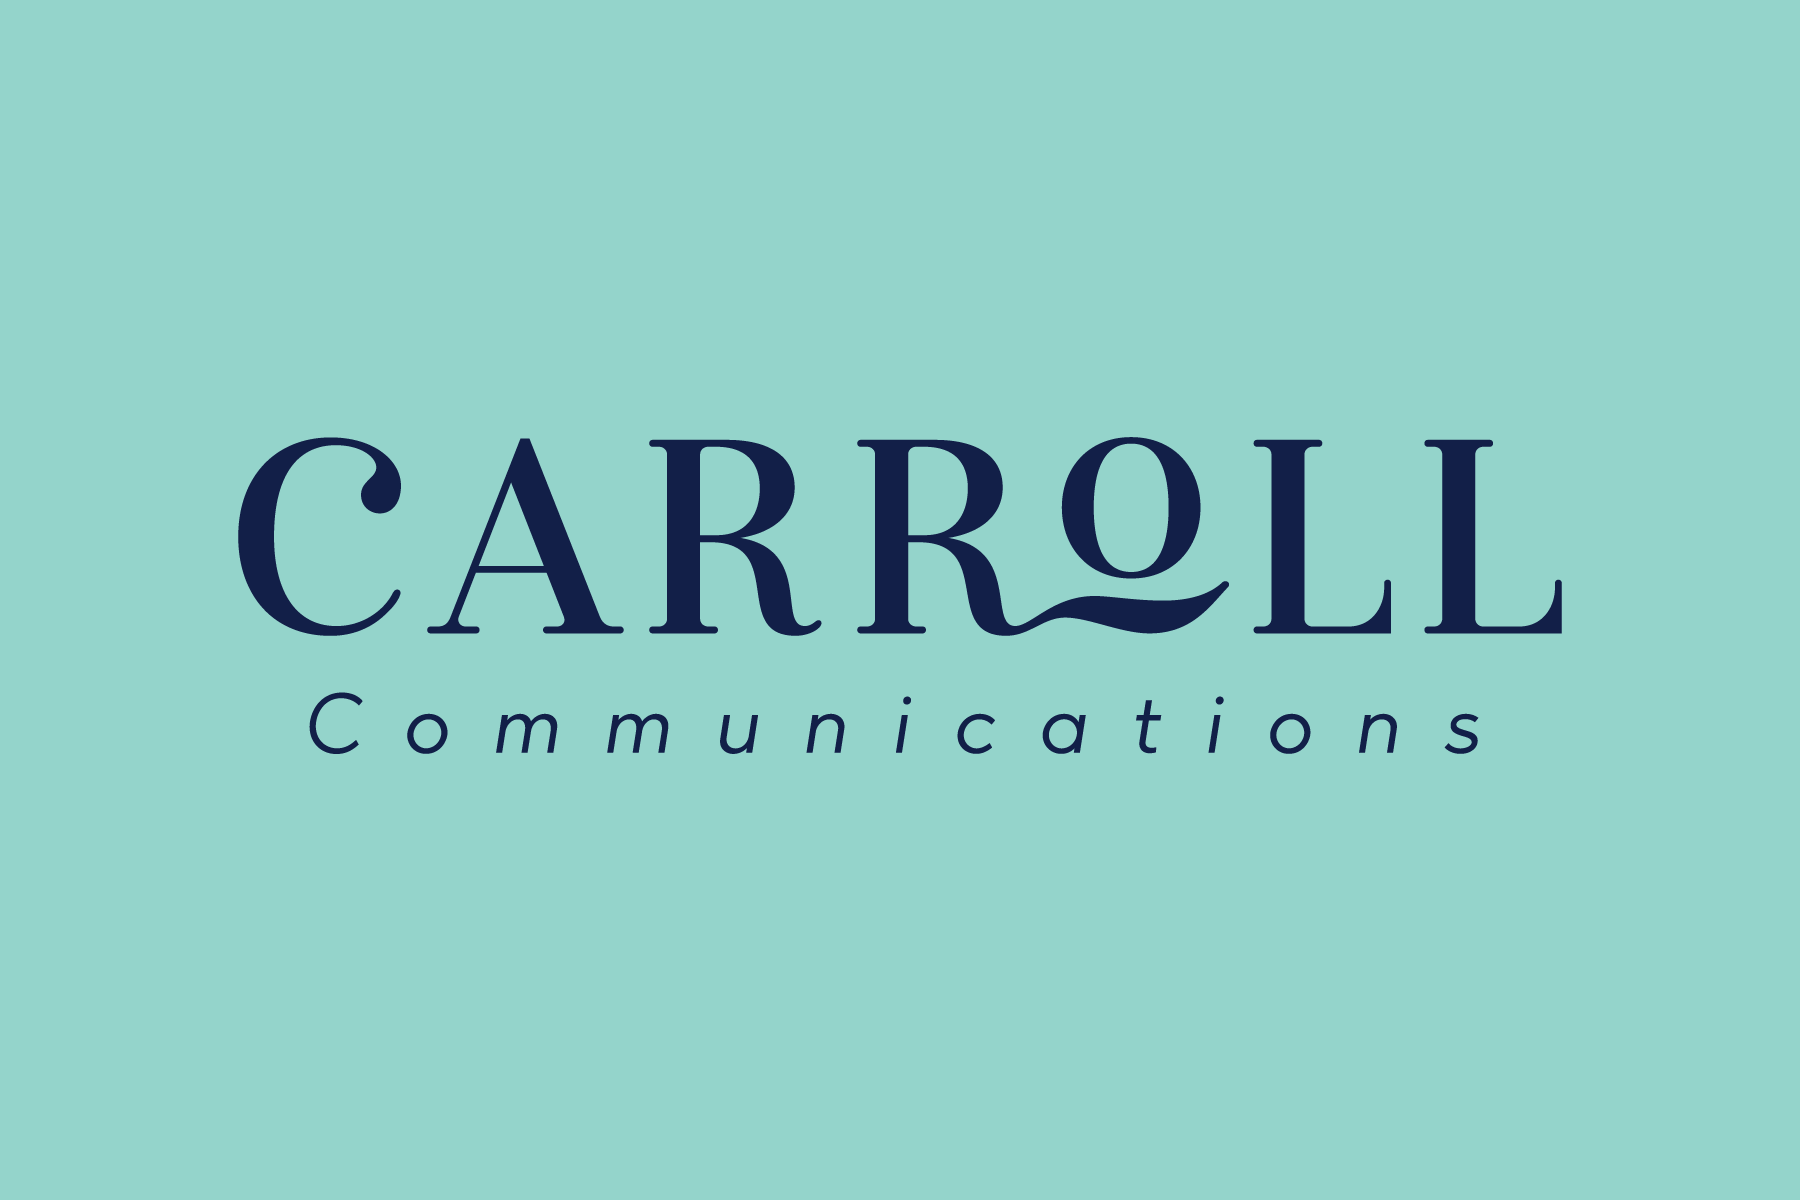 Carroll Communications